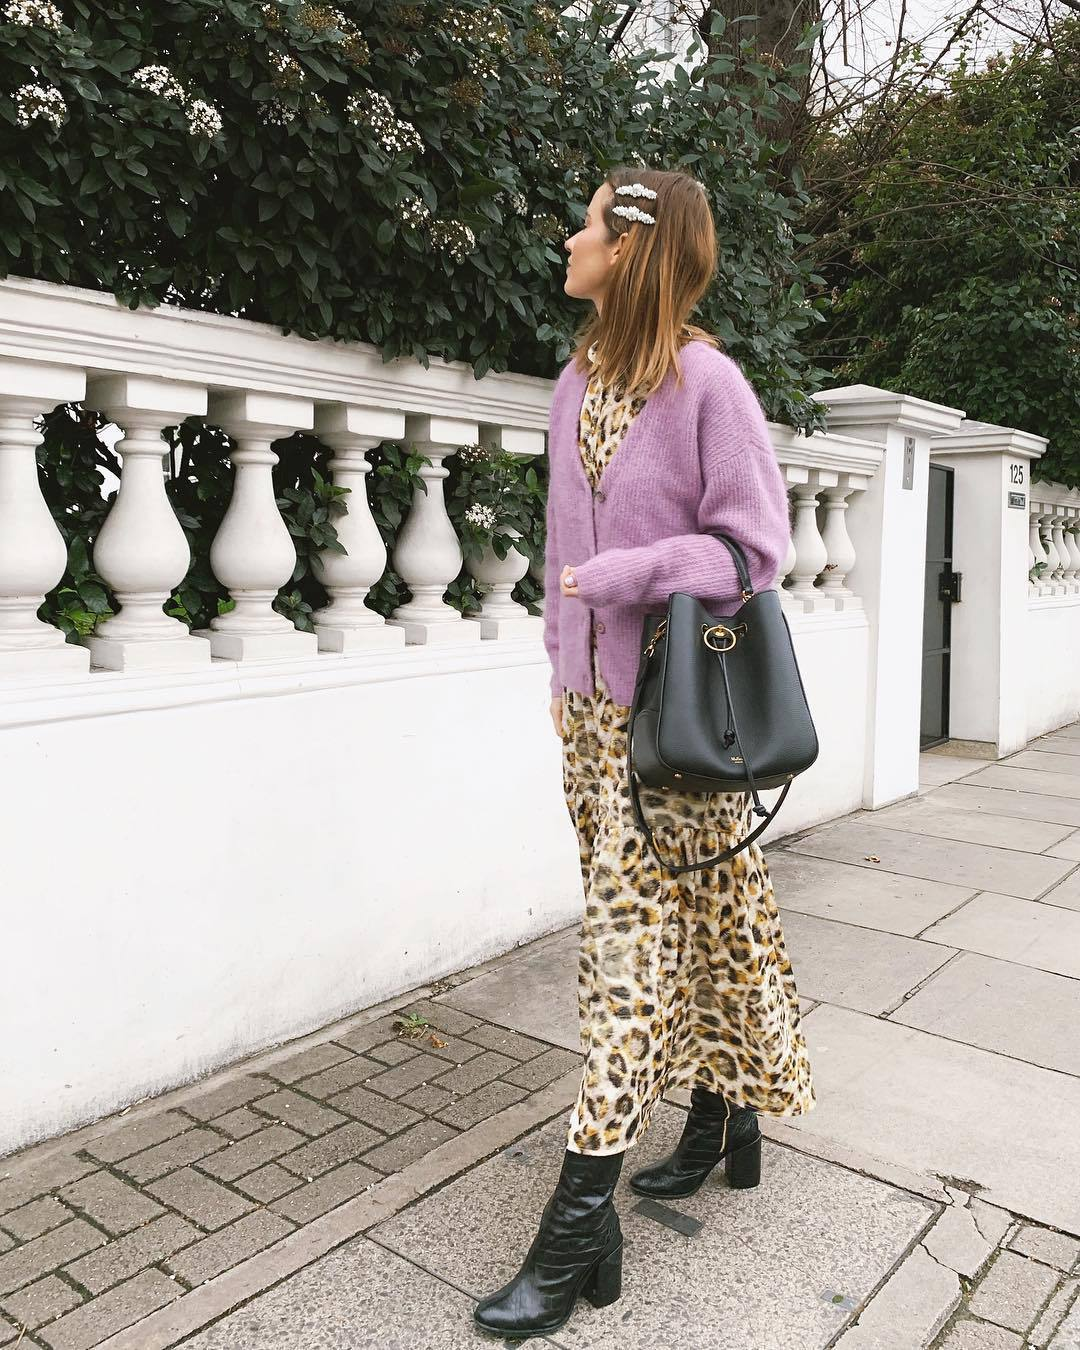 sweater cardigan v neck black boots heel boots leopard print maxi dress black bag shoulder bag